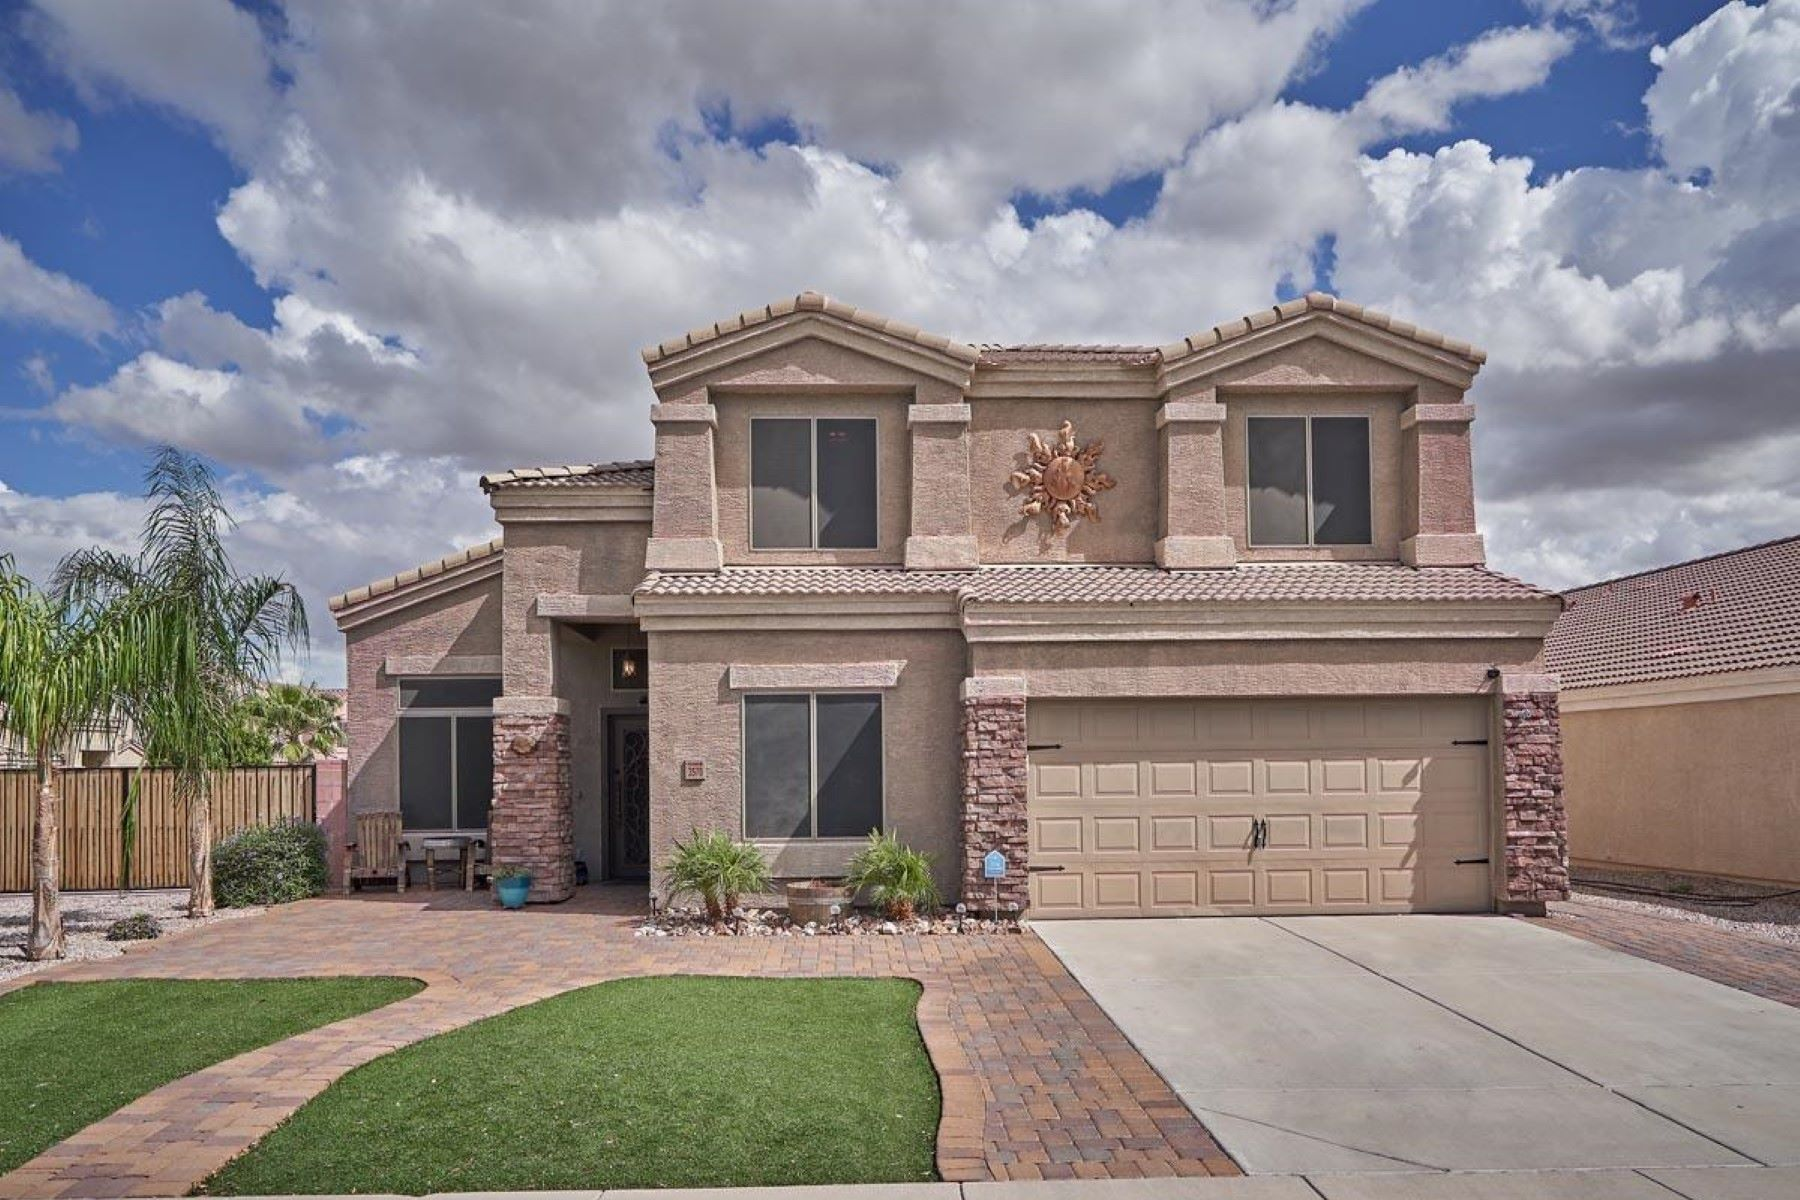 Single Family Homes for Sale at San Tan Heights 3570 W SUNSHINE BUTTE DR Queen Creek, Arizona 85142 United States